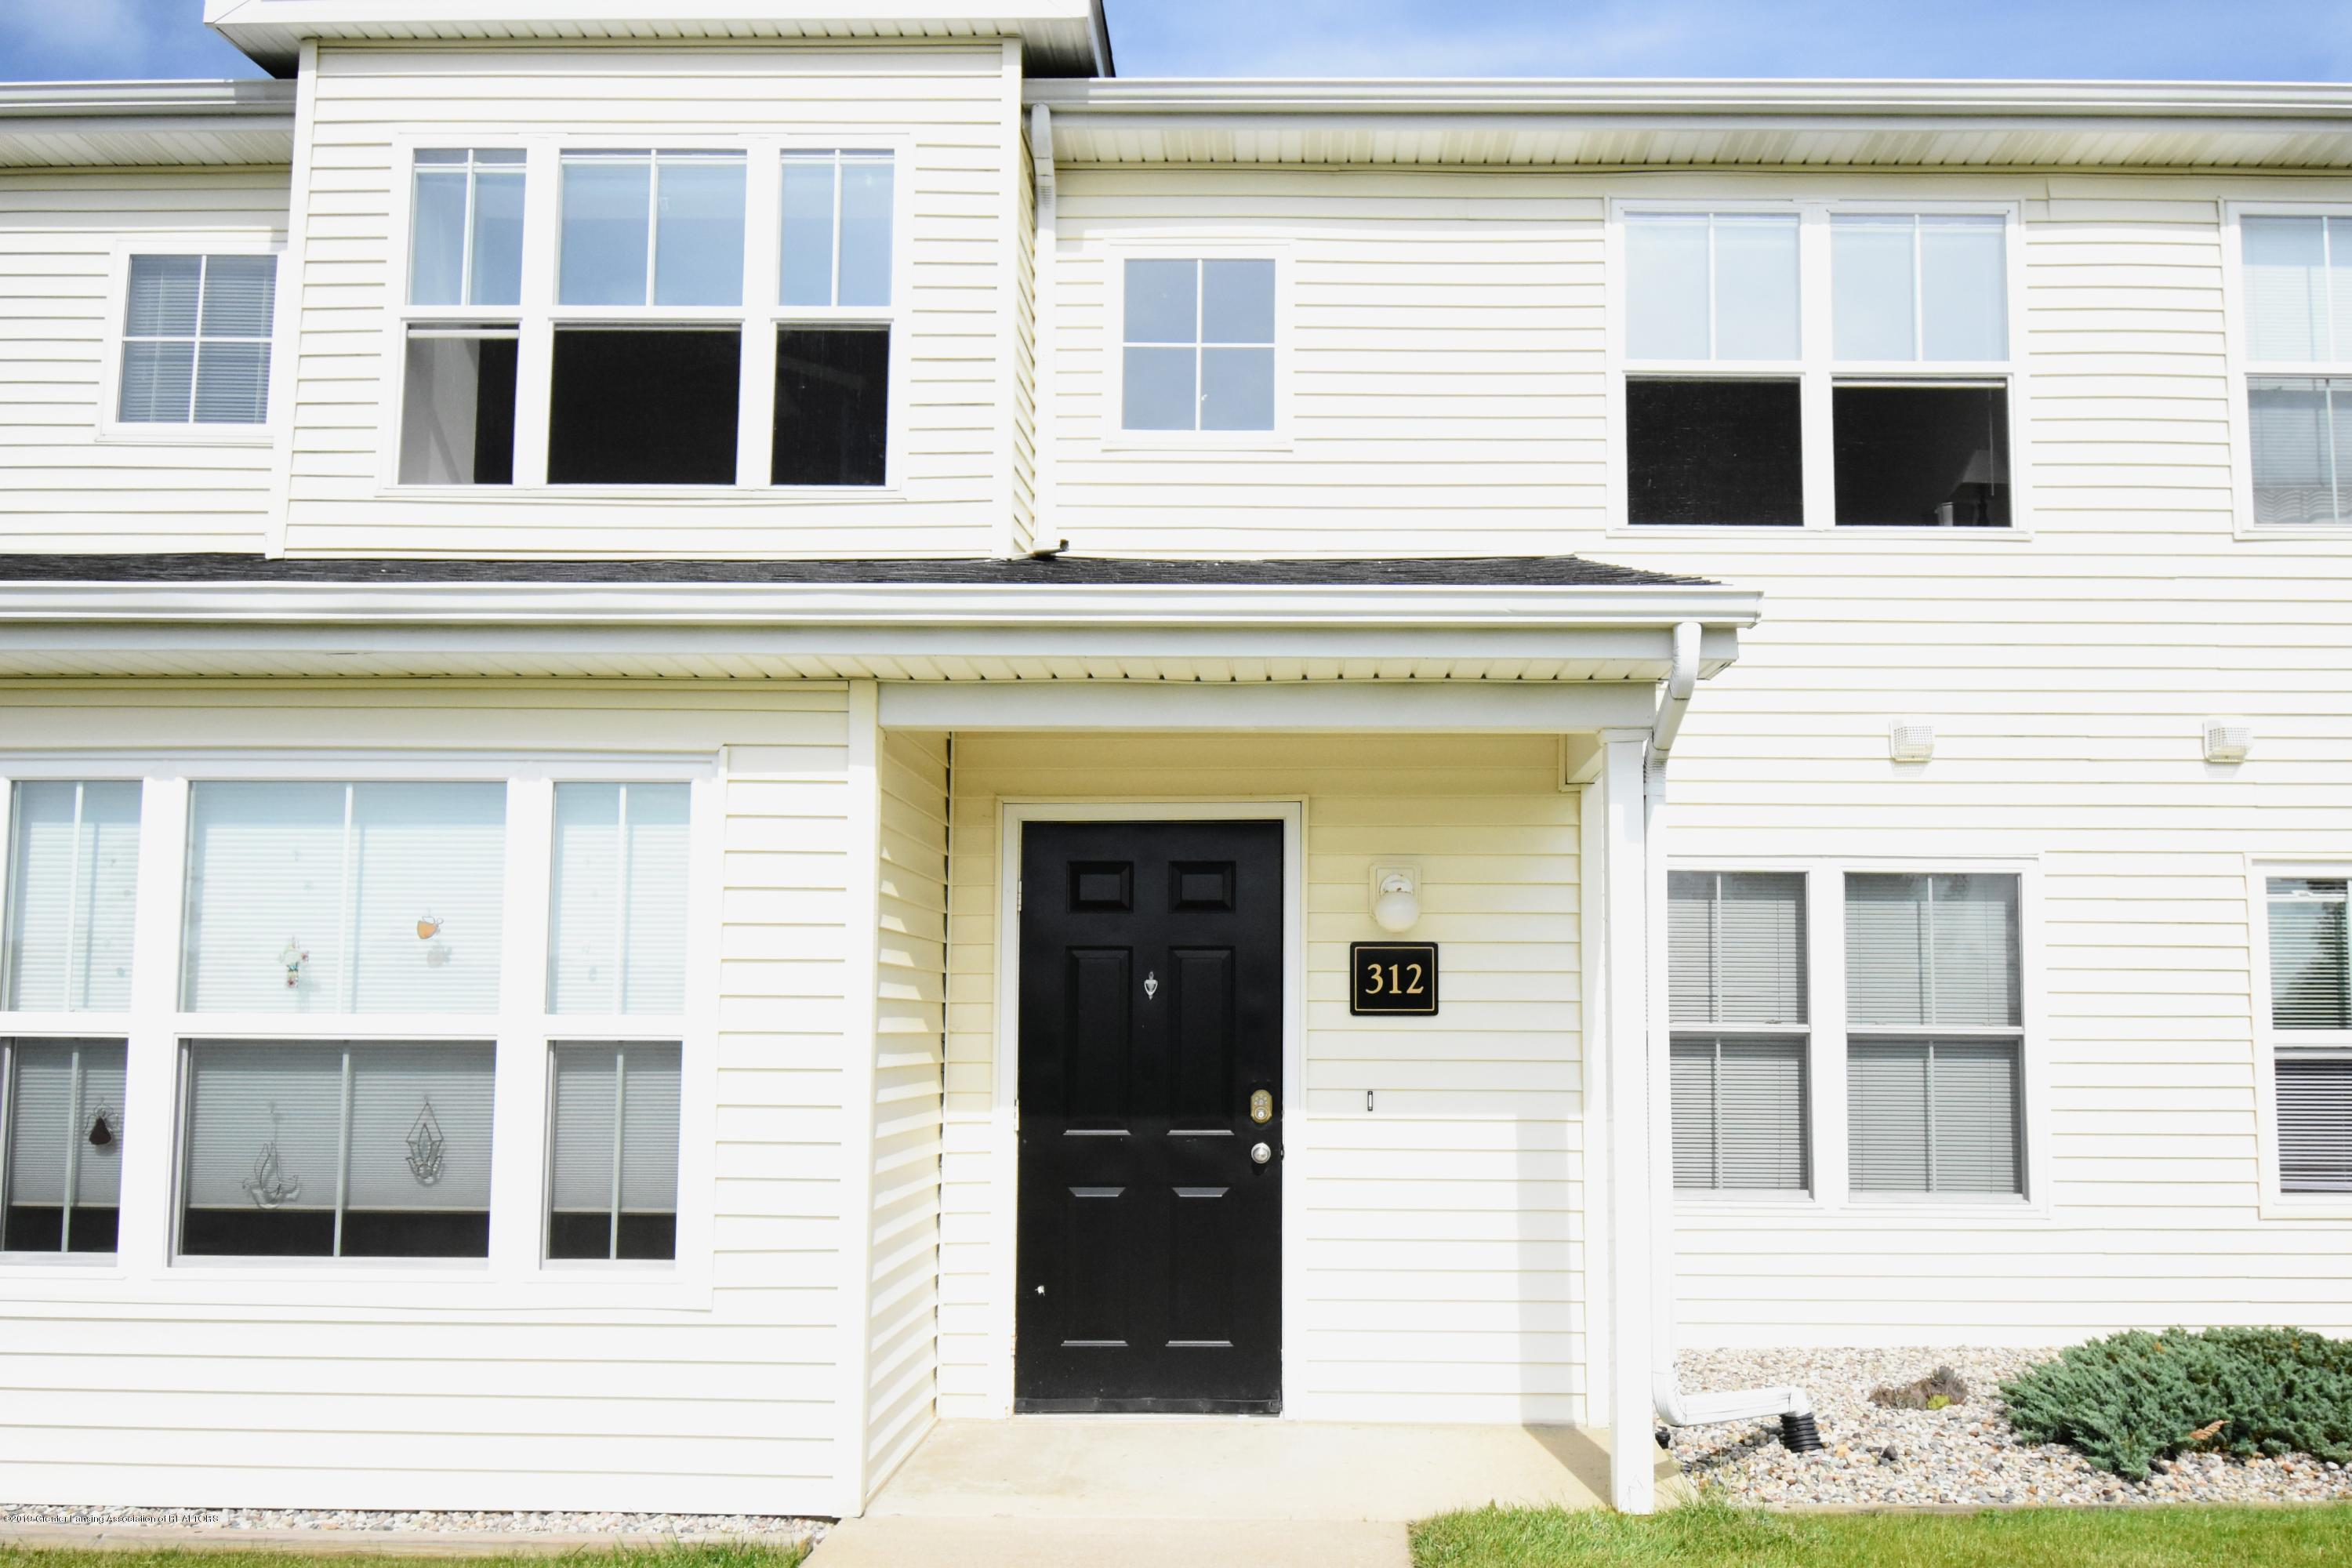 12907 Townsend Dr APT 312 - Front - 1